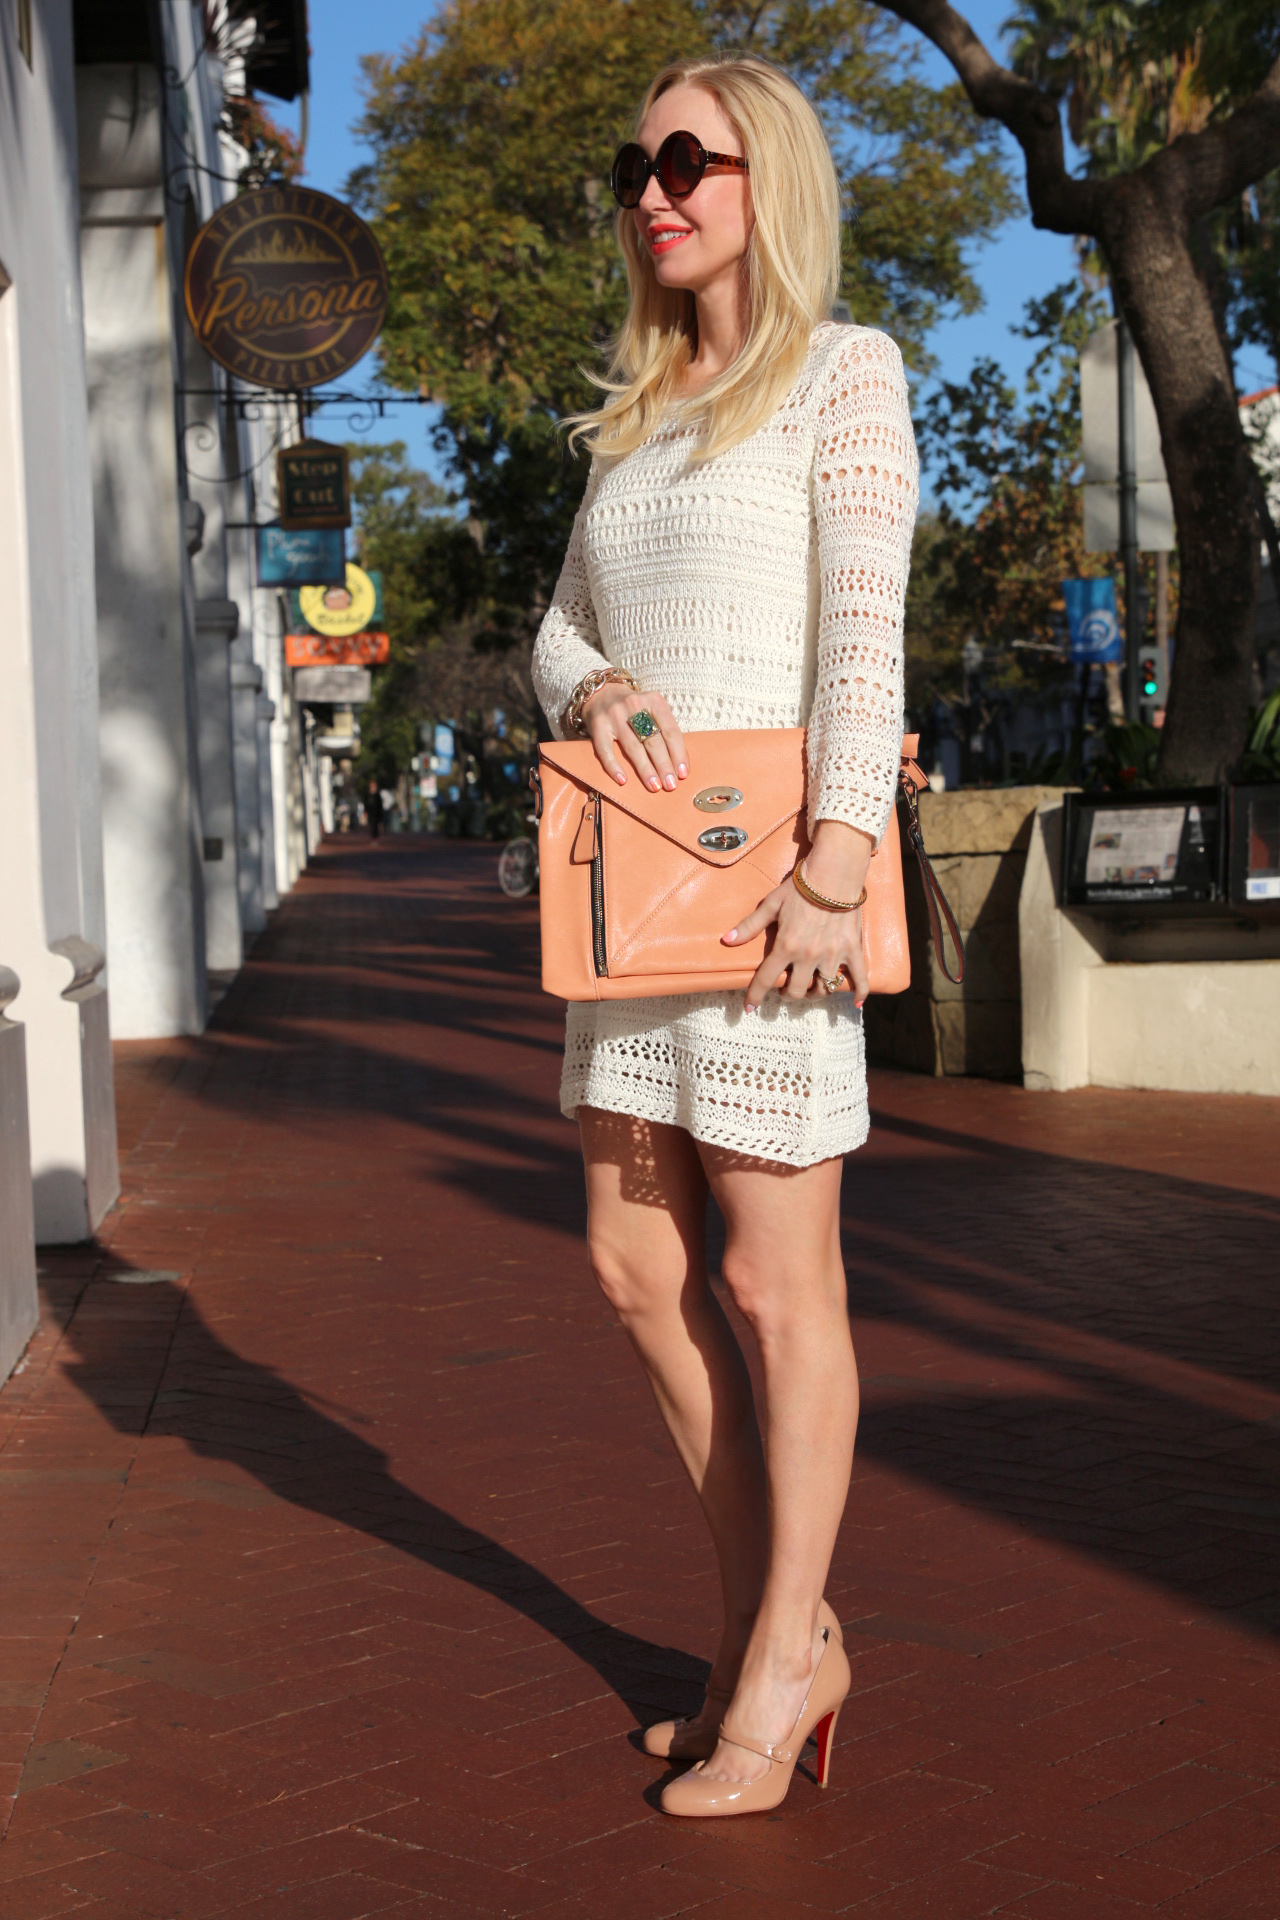 currently crushing, louboutin charlene mary jane pumps, purse mafia clutch, h&m crochet dress